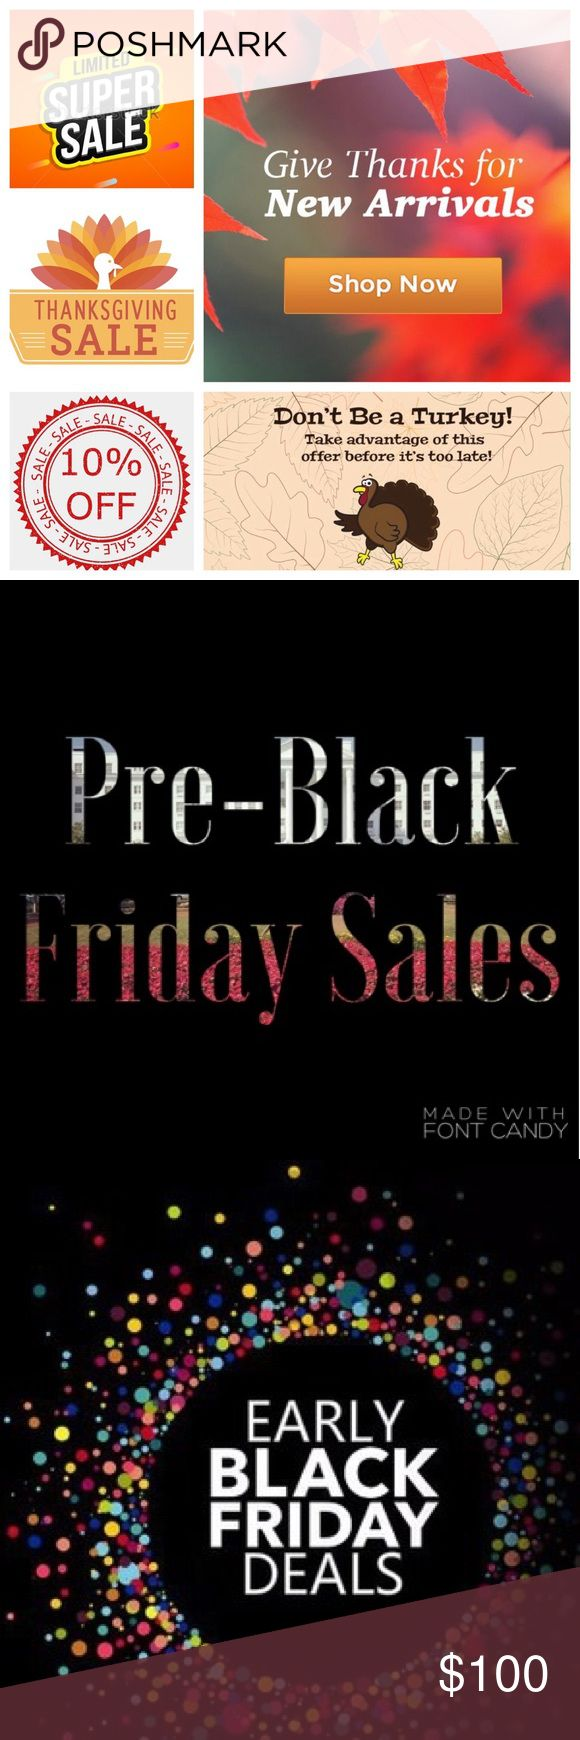 "All ""NWT"" on Sale! Pre-Black Friday Sale! Take 10% Off ALL NEW WITH TAG ""NWT"" Items EXCEPT for 🎉FINAL PRICE🎉 Items. This Sale IS NOT COMBINABLE with Any Other Sales! Just Like Your Item and Offer 10% Less And I Will Except! Get Your Christmas Shopping Done Early!! Look For My Other Sales, Too! Buy 2-$5 Items, Get the 3rd One Free! Other"